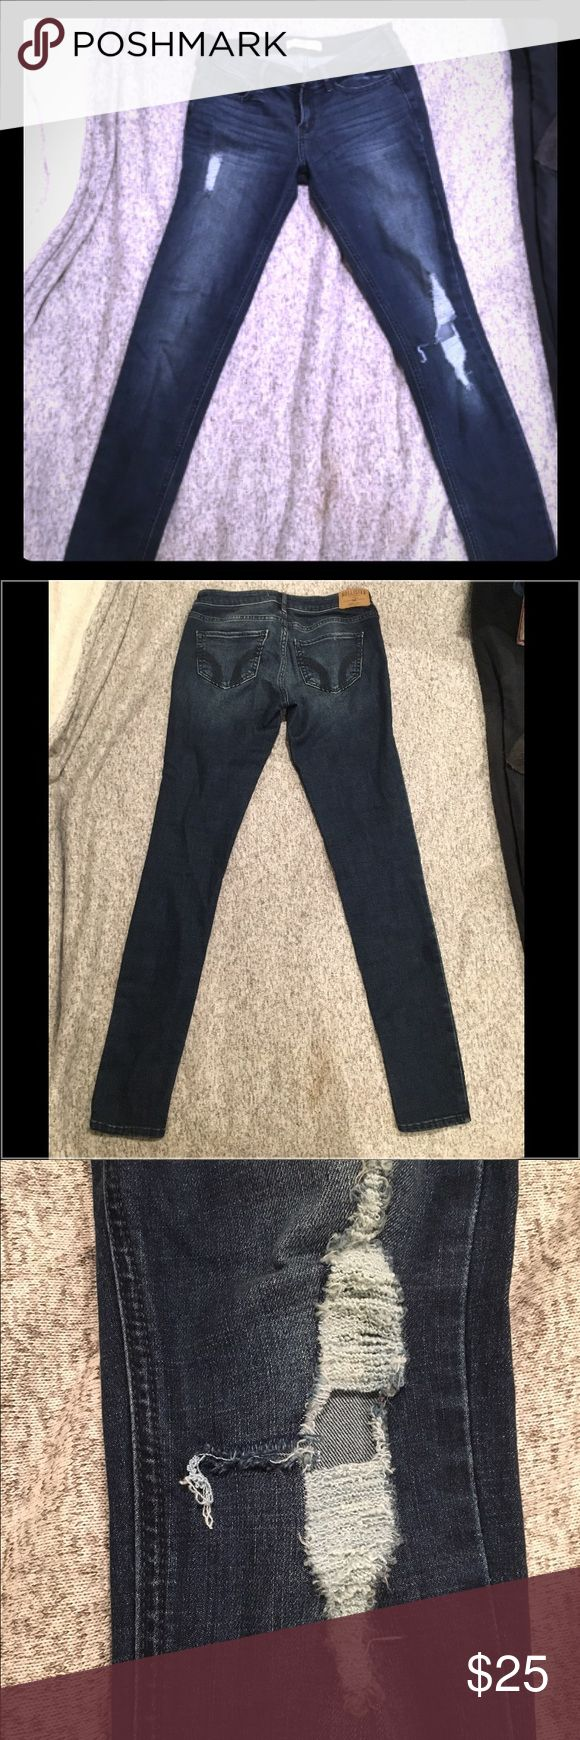 Hollister distressed skinny jeans, size 2 Love these. Worn once or twice. Distressed and super cute. Knee tear looks like it may of torn a little more than when purchased though I'm not foresure. The more distress the better! Hollister Jeans Skinny